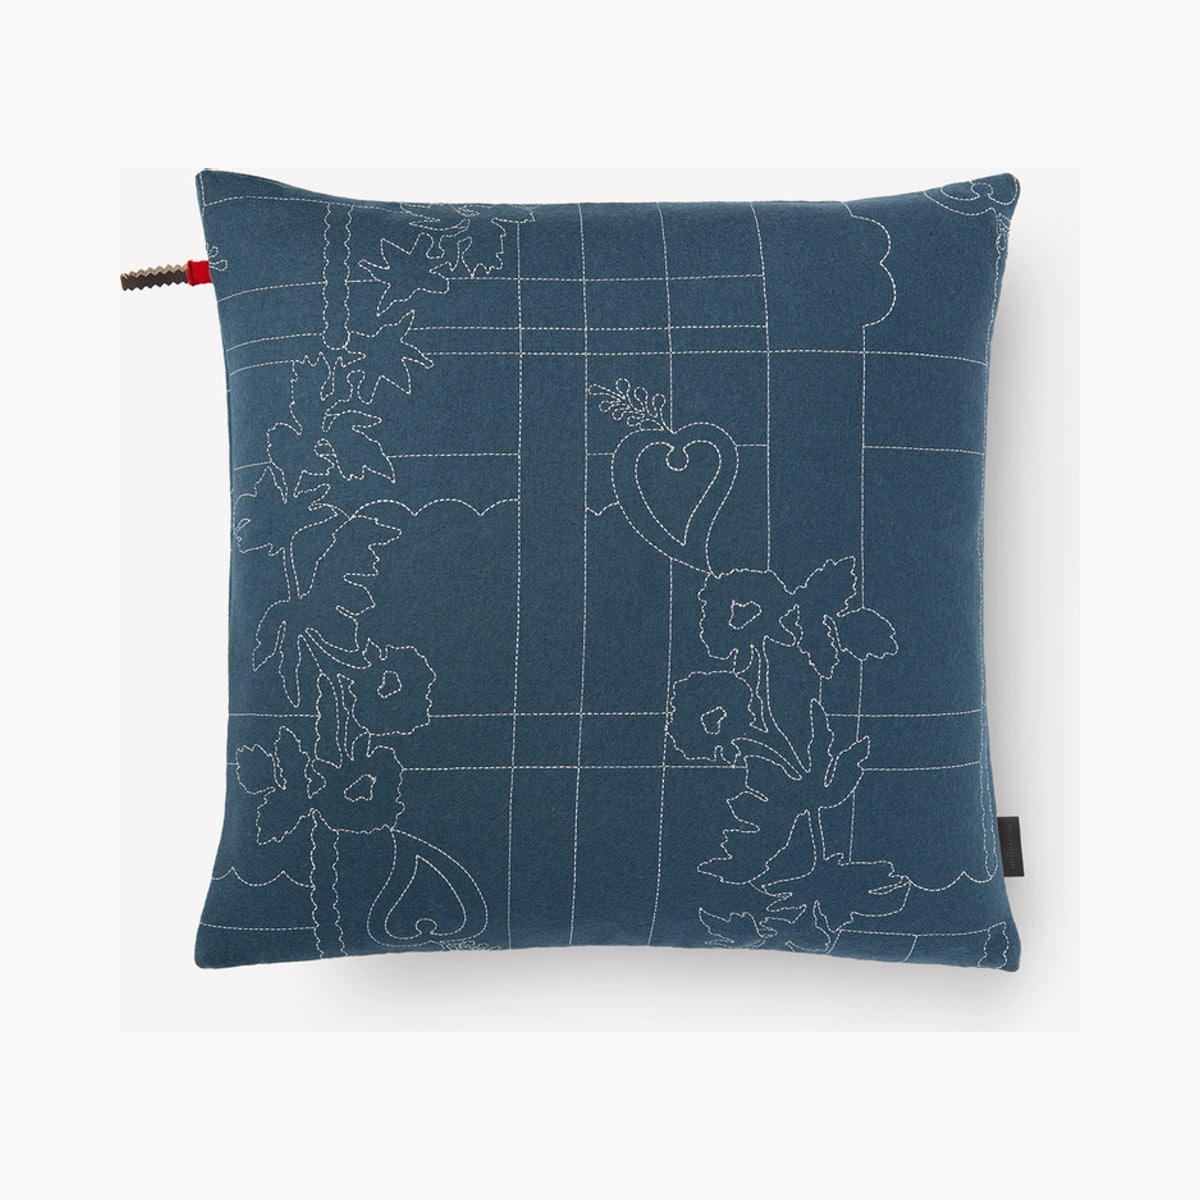 Layers Park Pillow